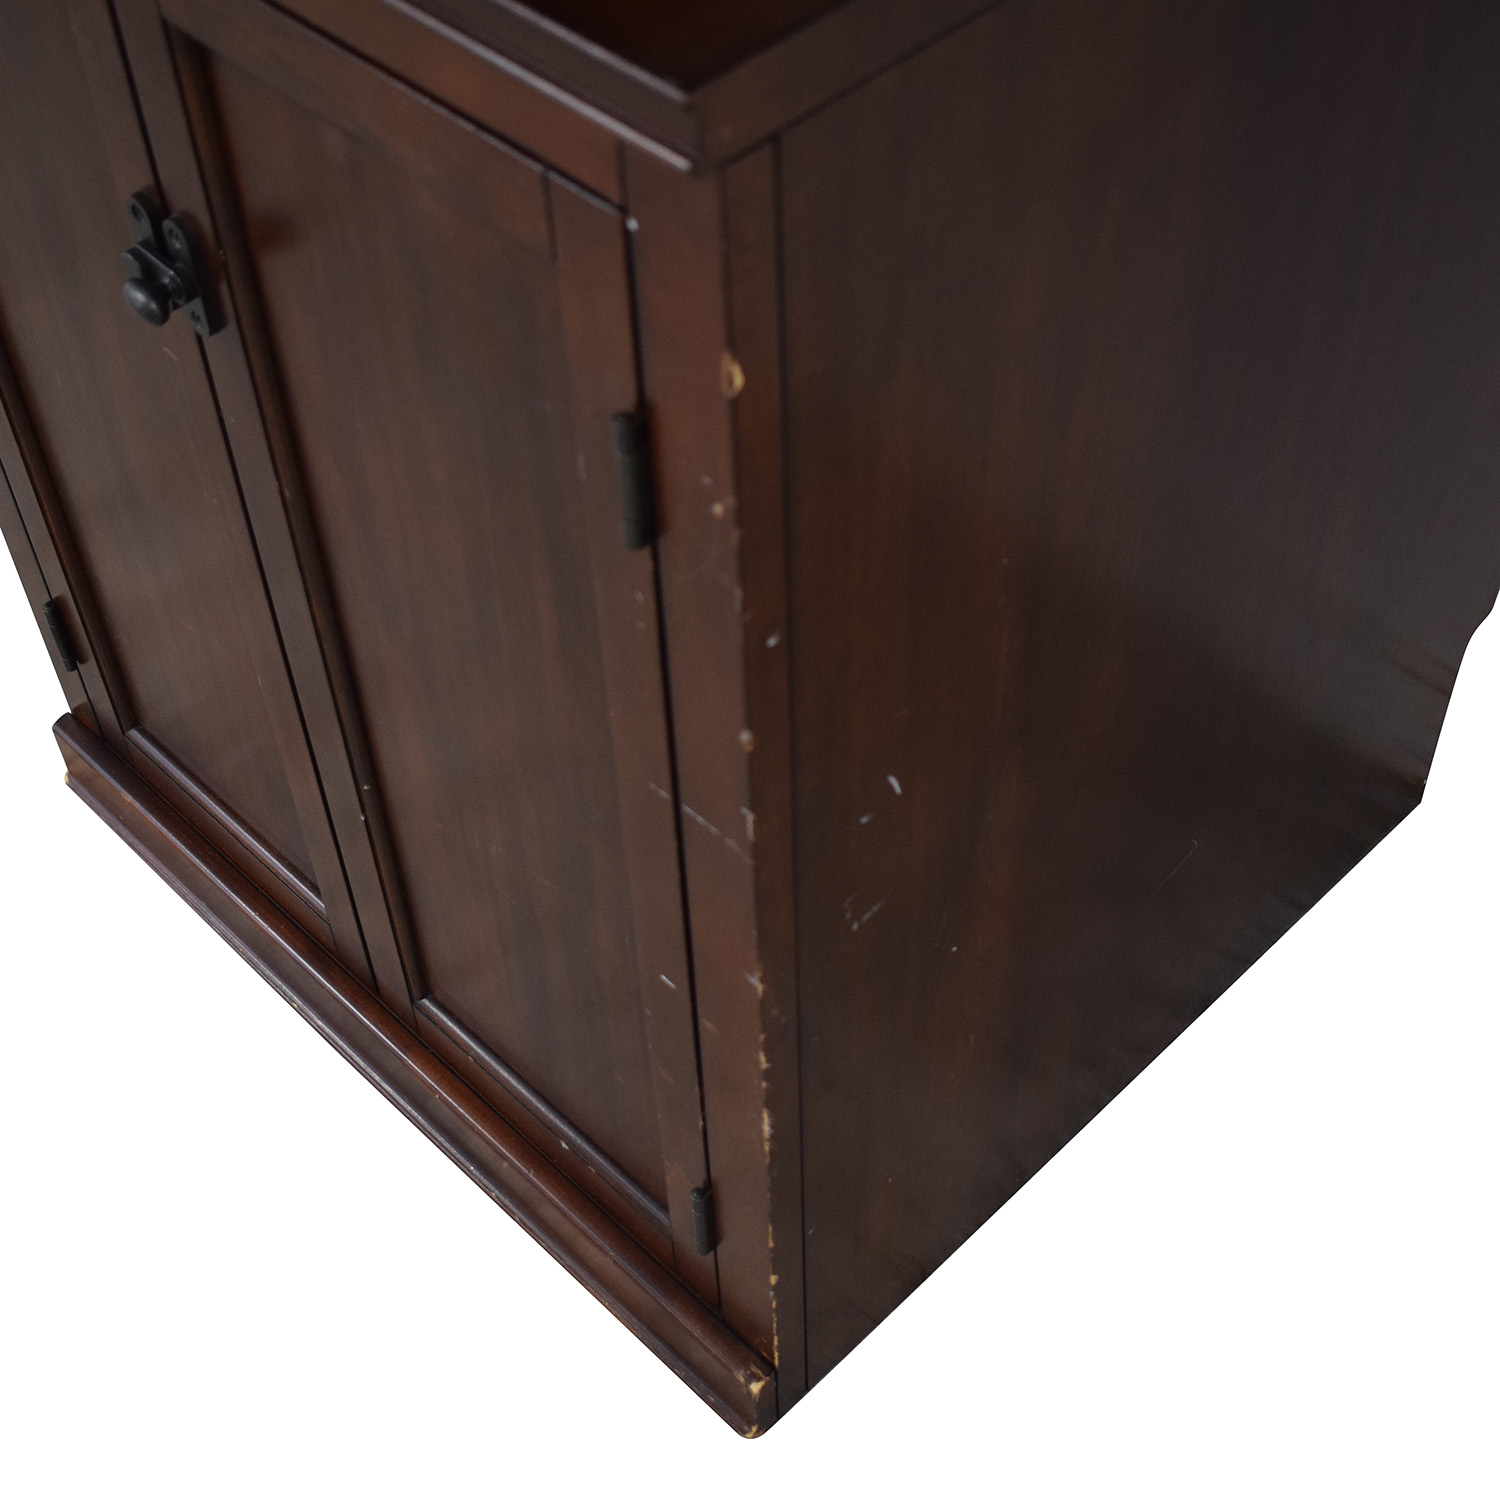 Pottery Barn Pottery Barn Bookcase with Storage Cabinet price